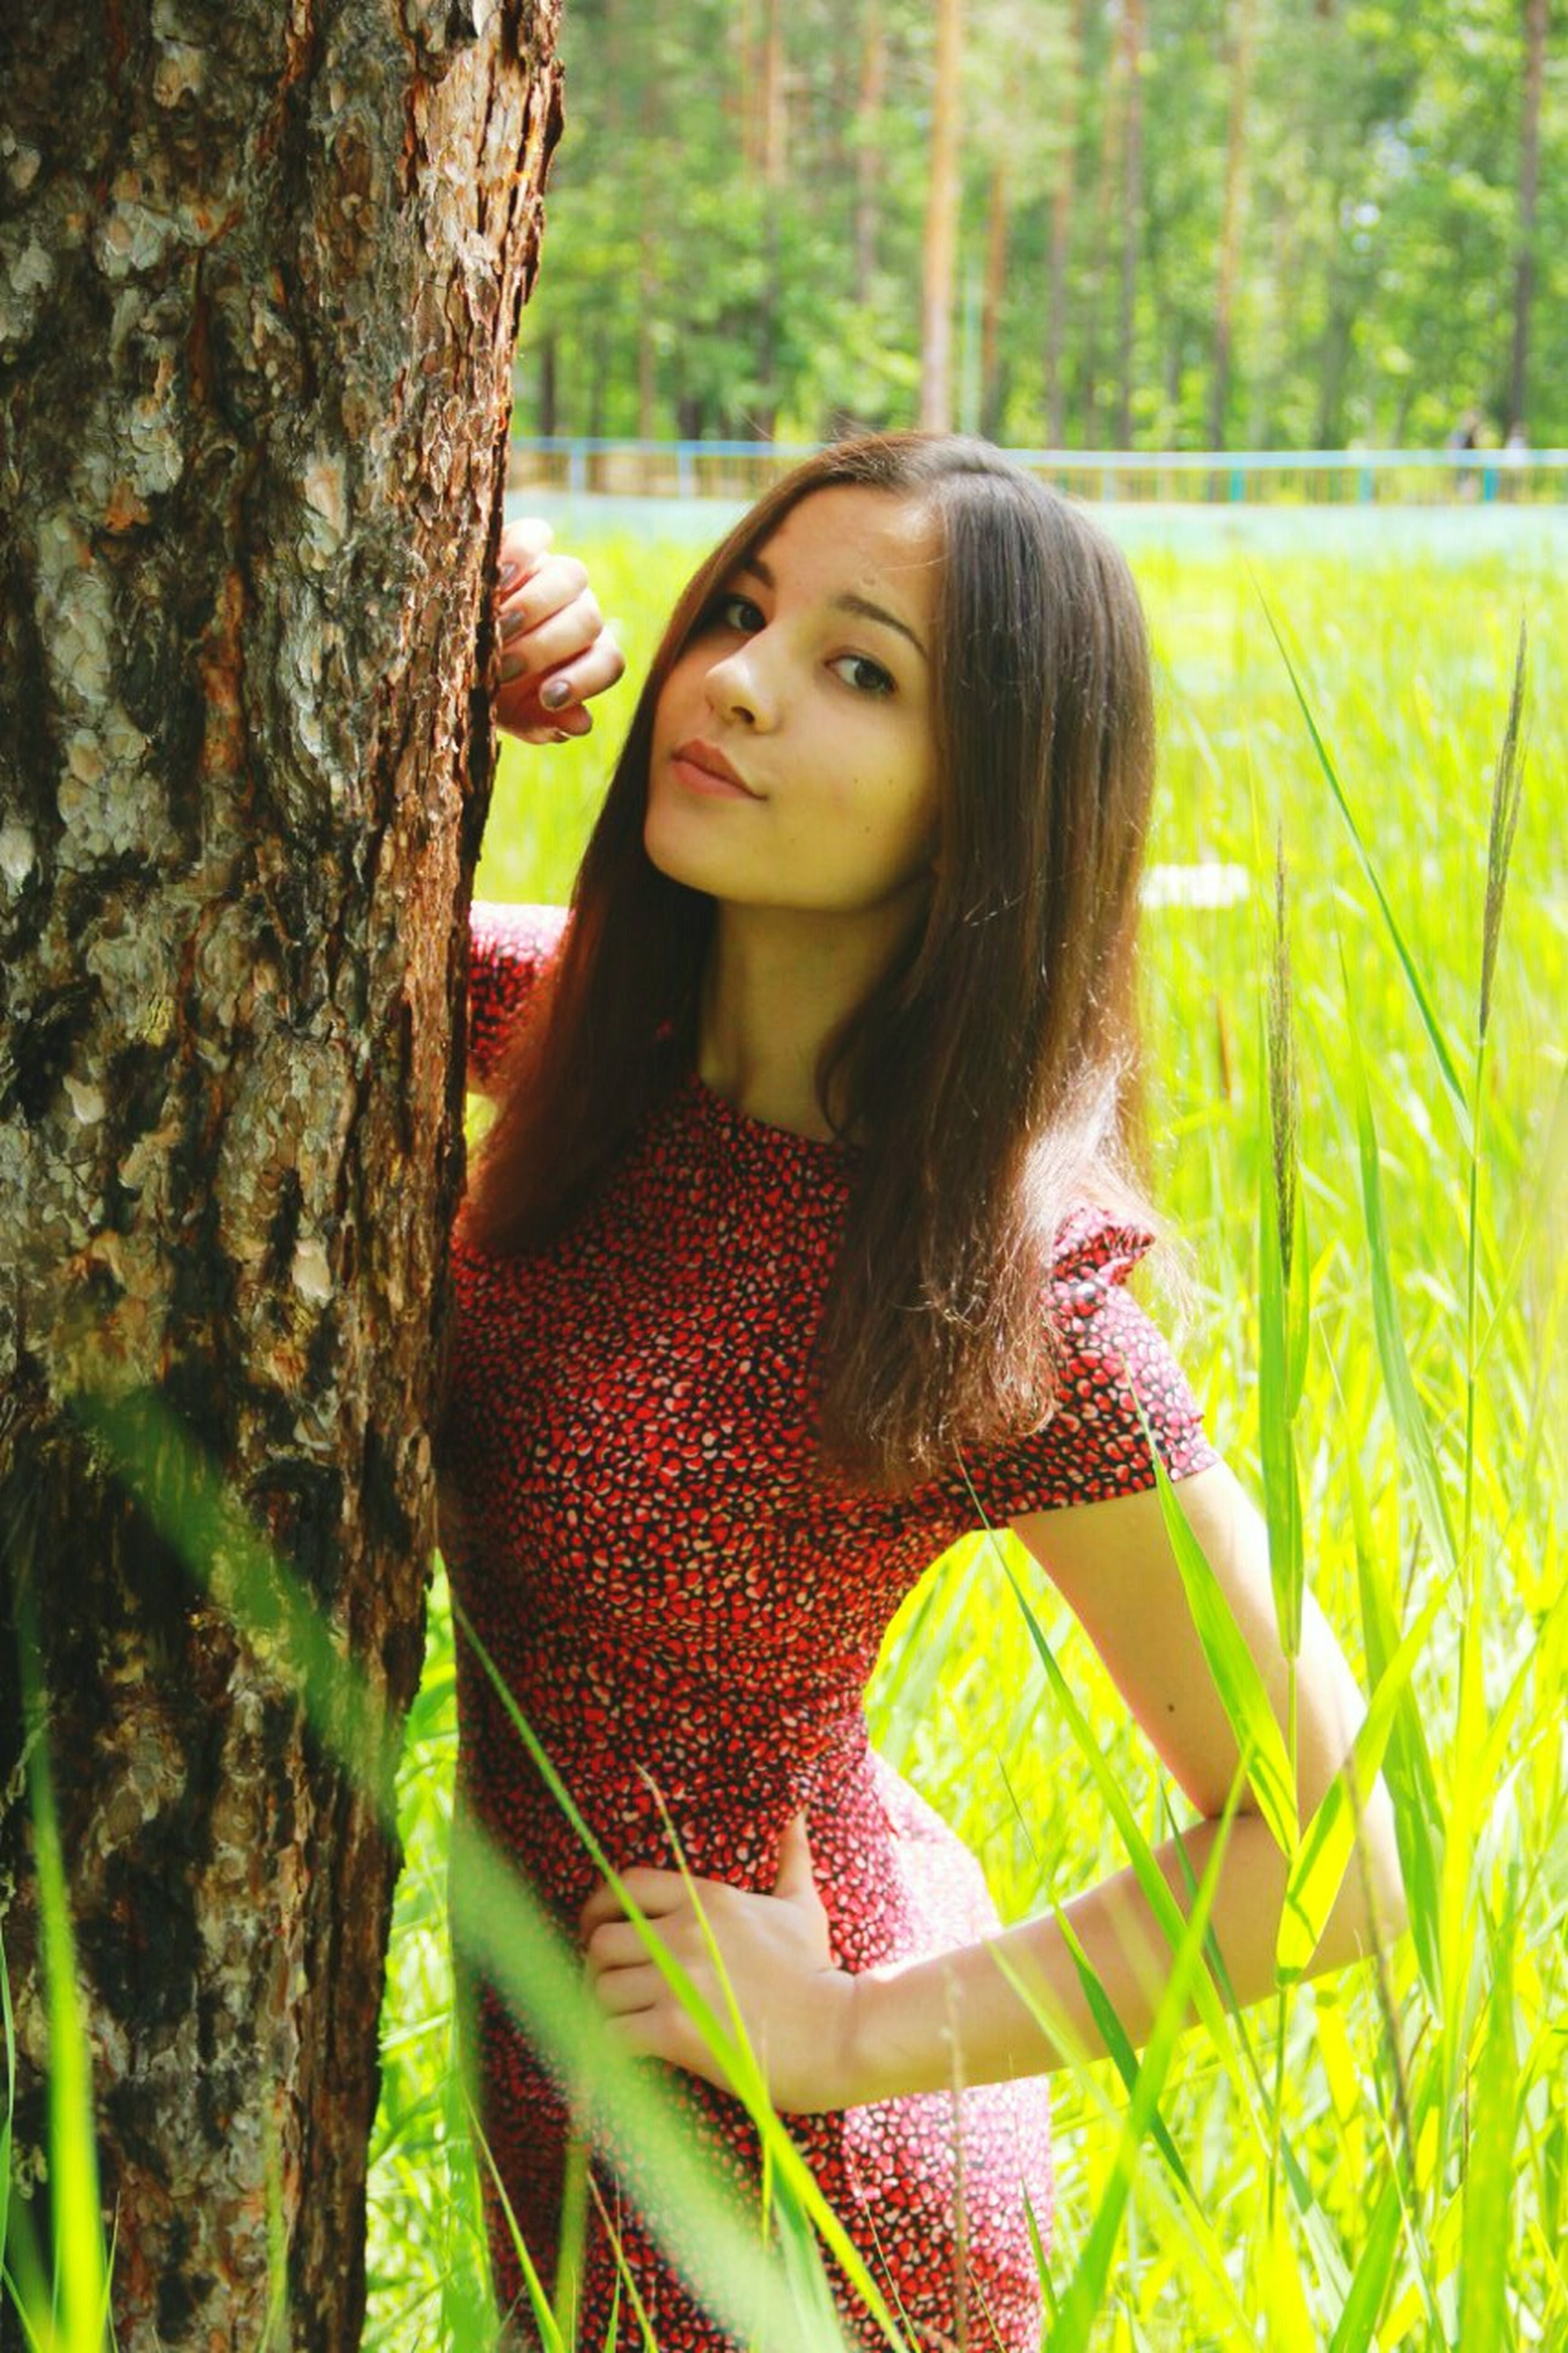 person, long hair, young women, young adult, lifestyles, tree, leisure activity, casual clothing, portrait, waist up, looking at camera, front view, standing, tree trunk, focus on foreground, forest, smiling